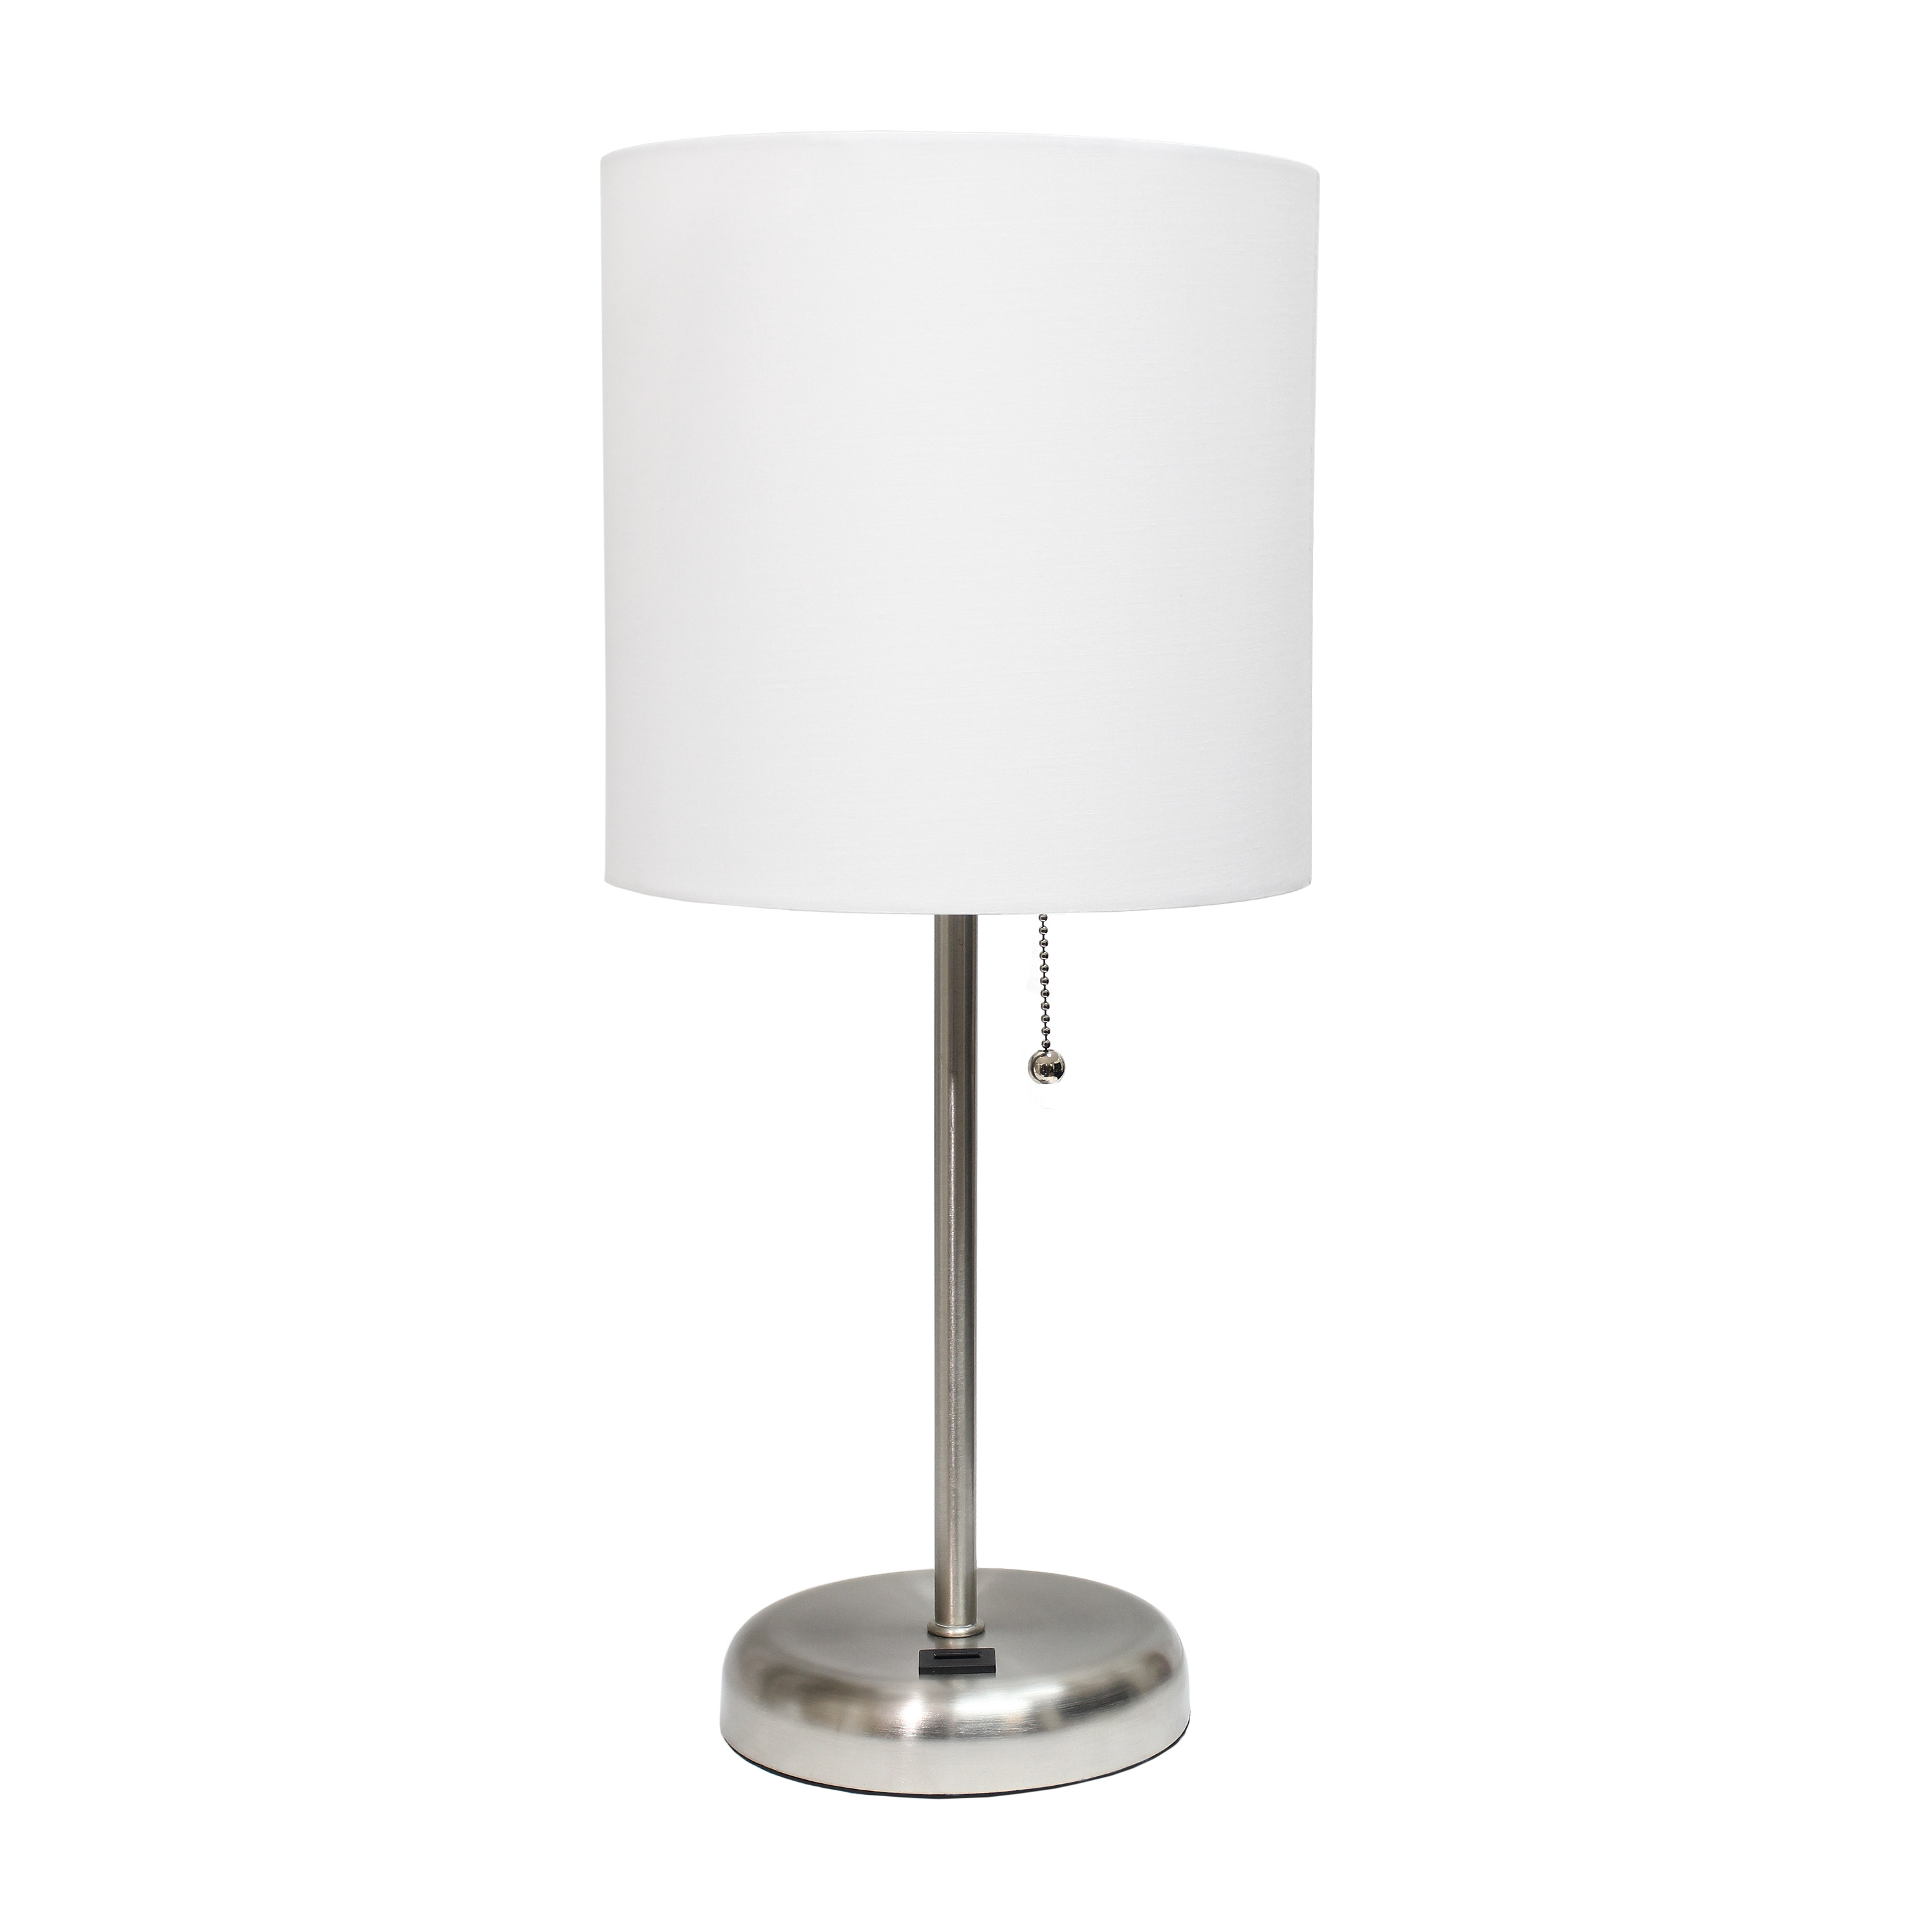 LimeLights Stick Lamp with USB charging port and Fabric Shade, White